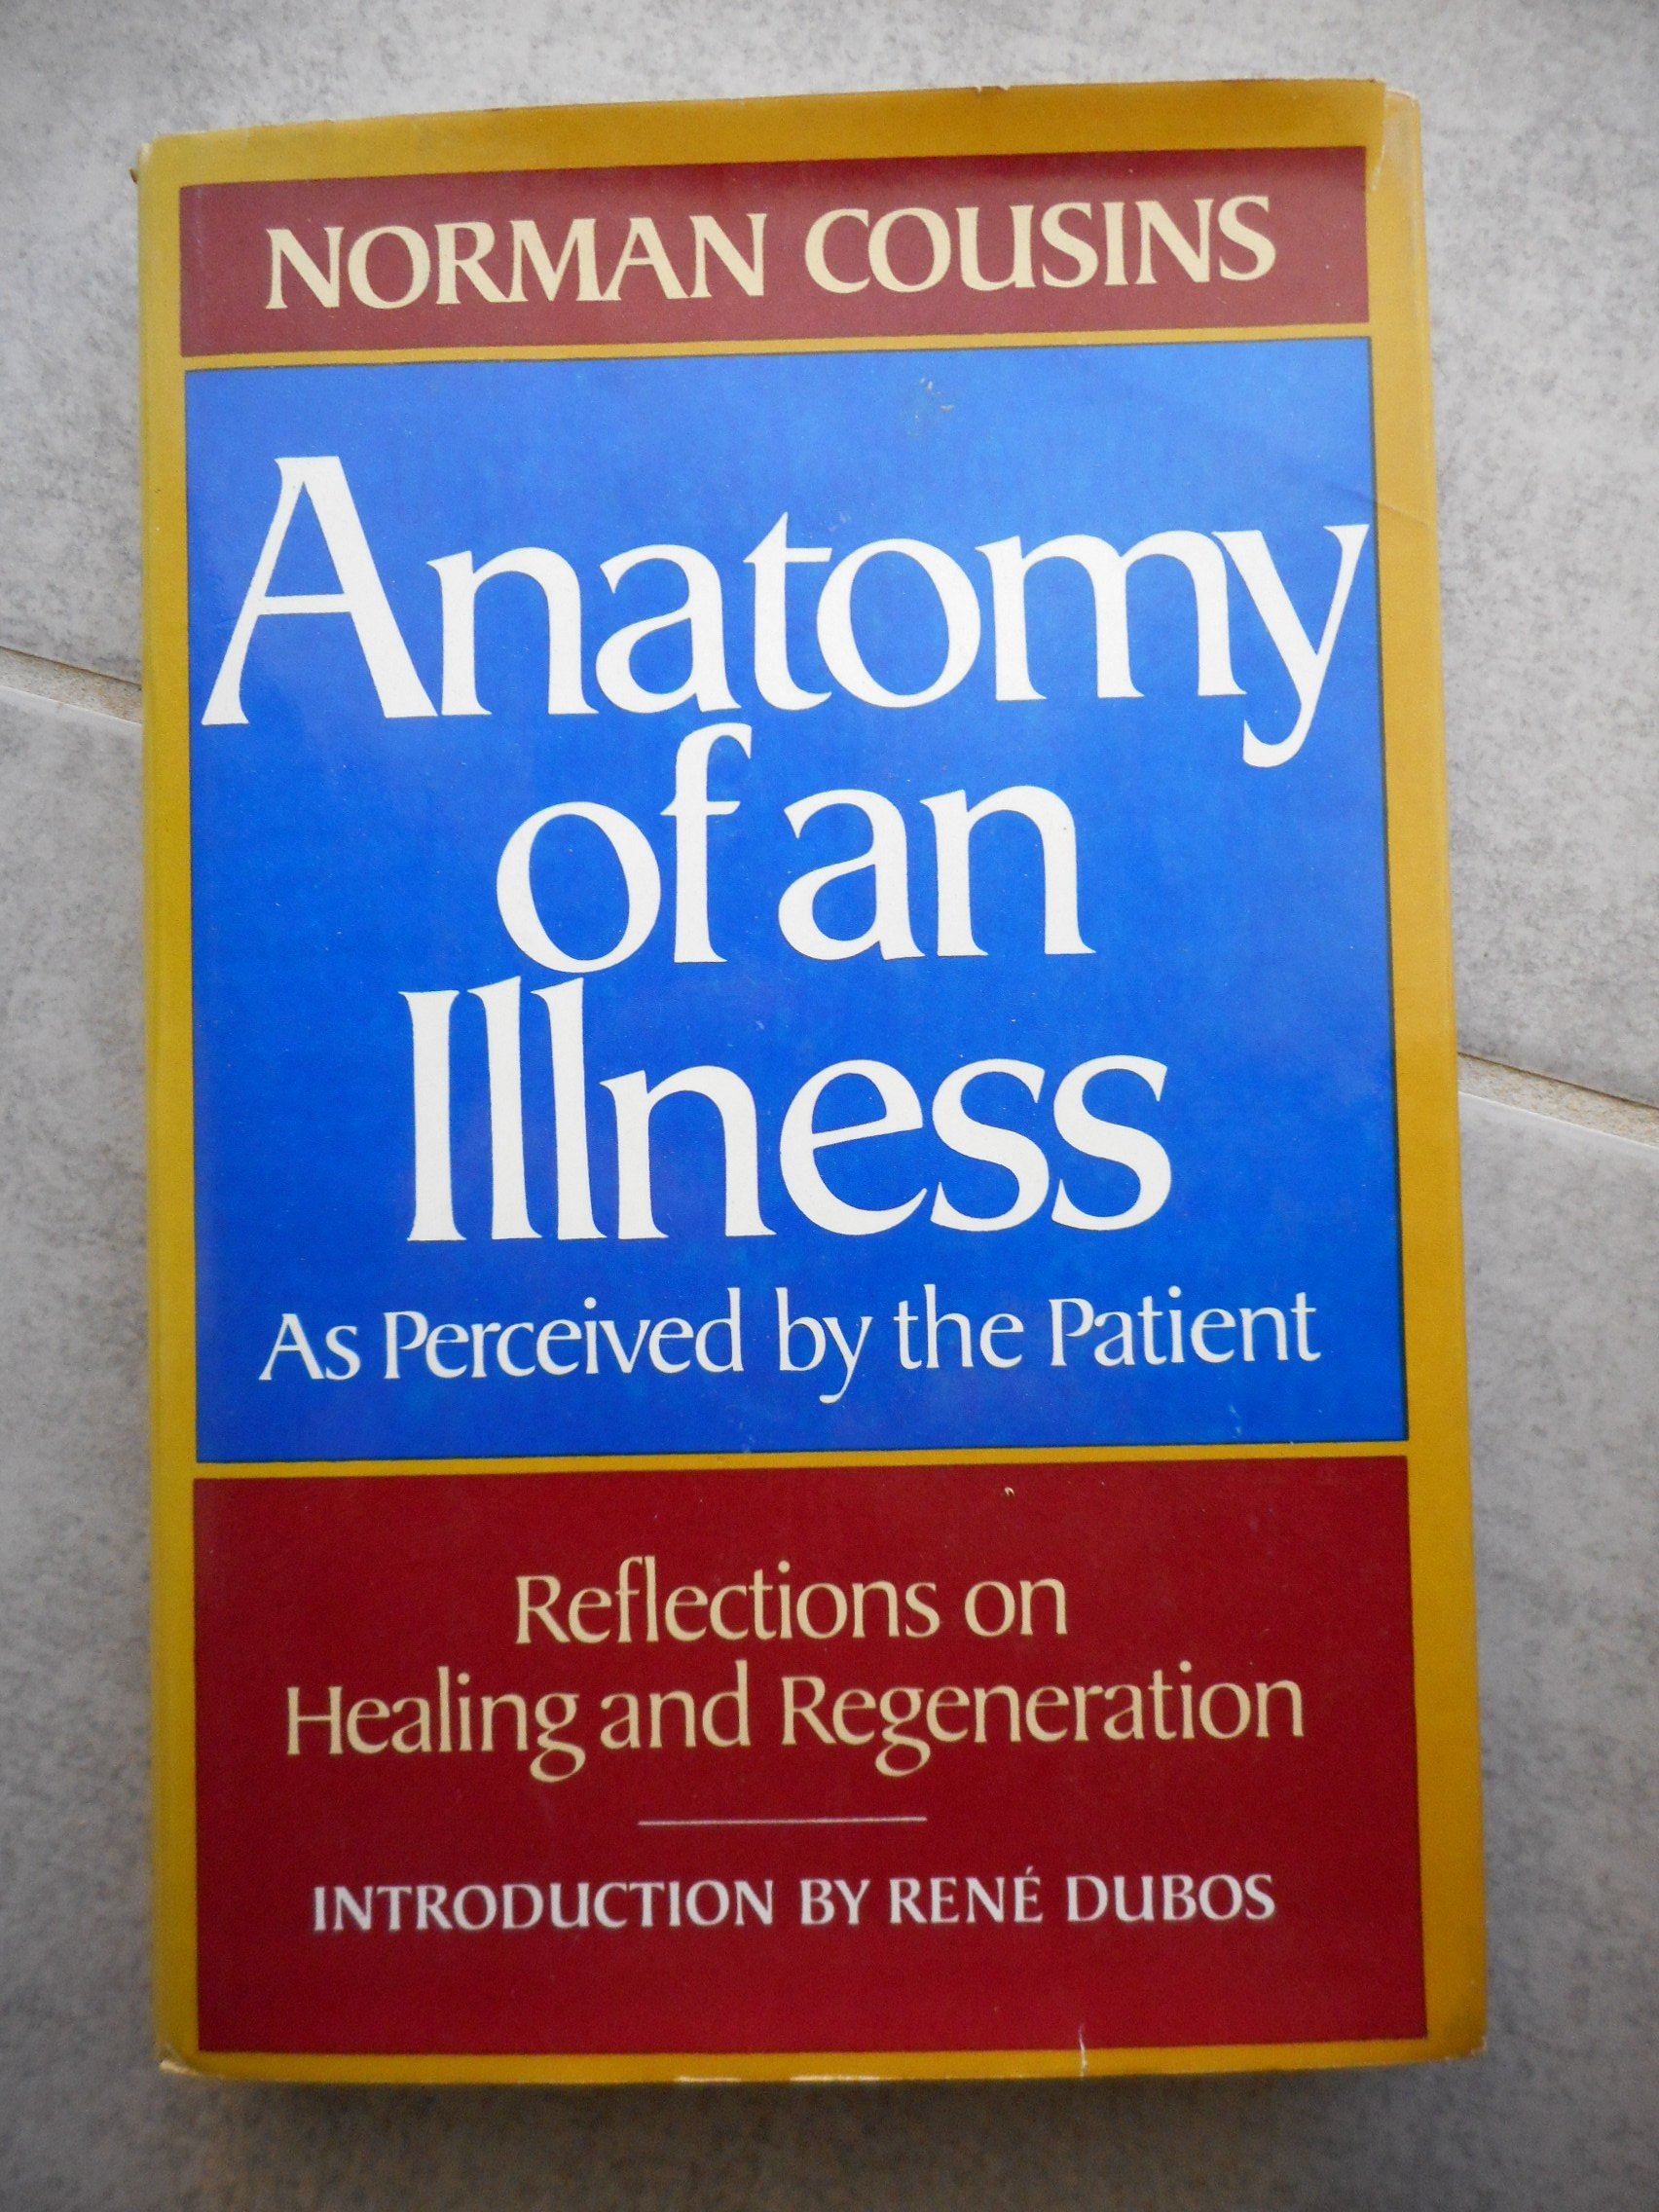 ANATOMY OF AN ILLNESS.: Amazon.co.uk: Norman Cousins: 0884611685999 ...